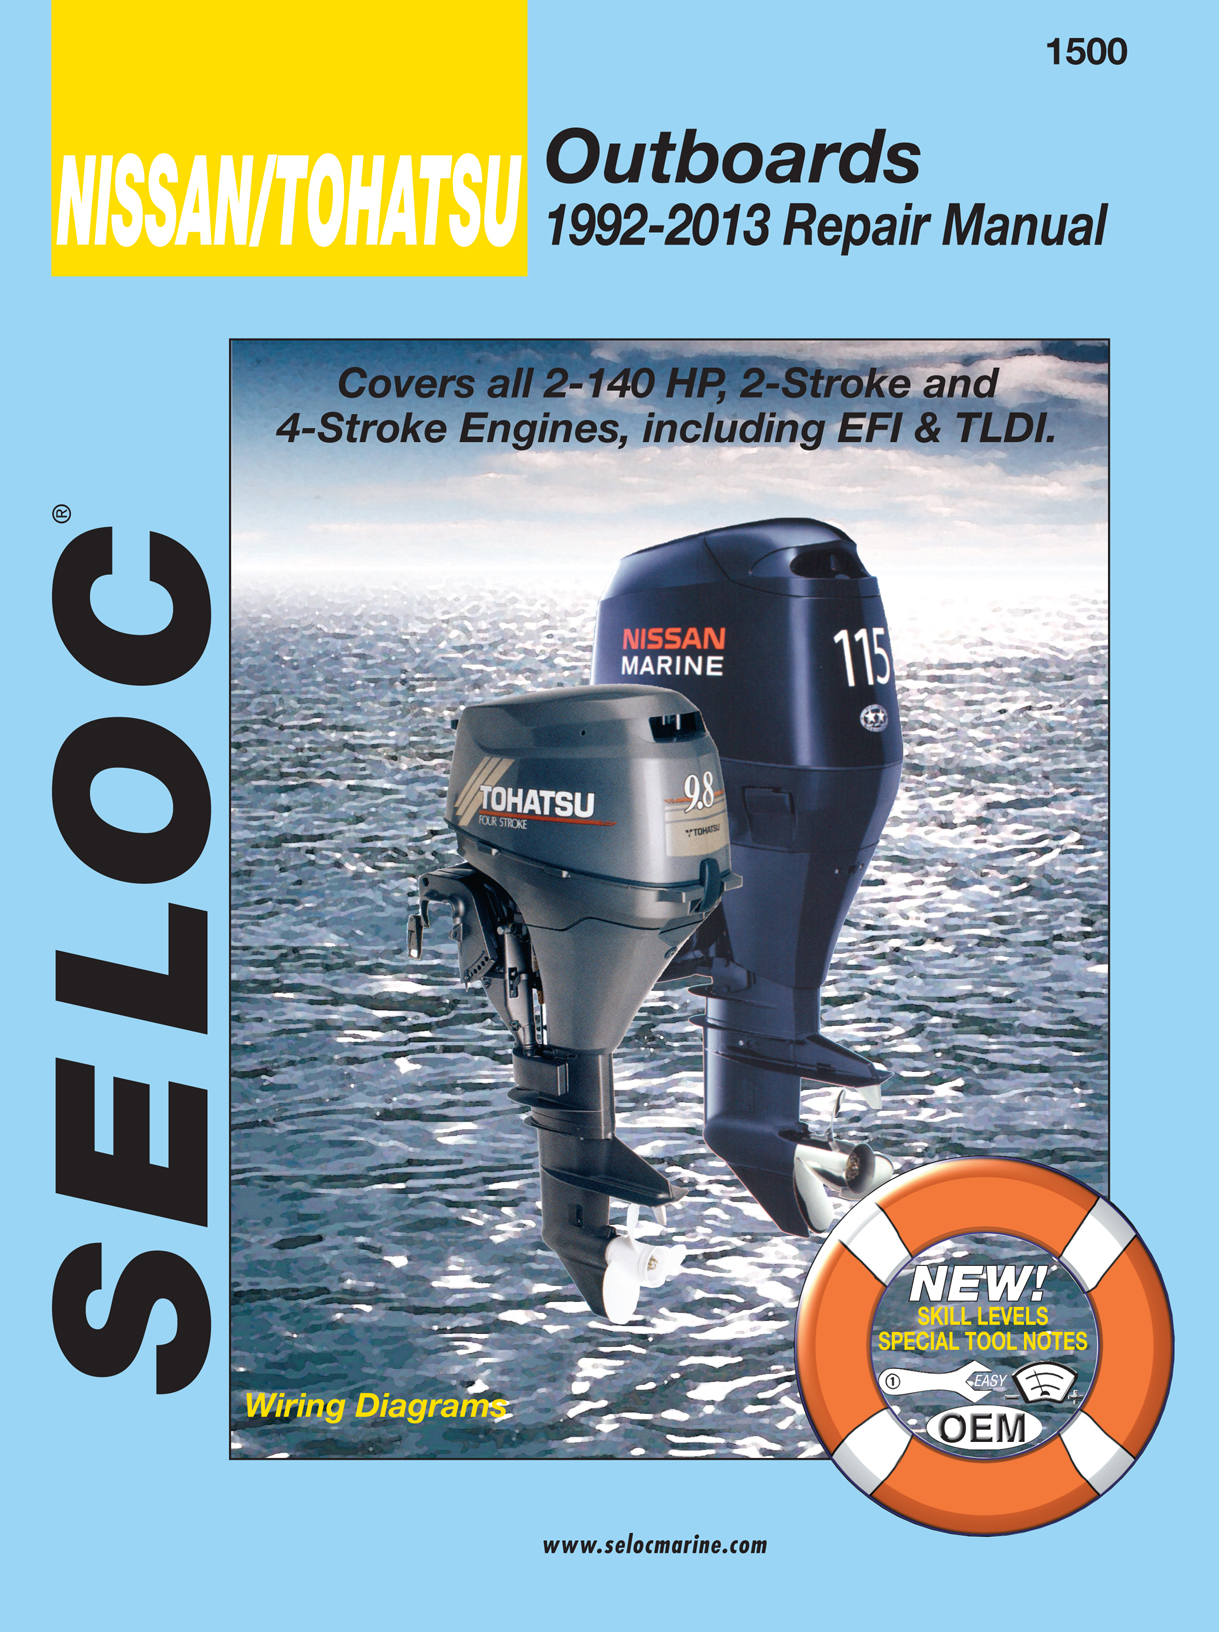 Re: Need a workshop manual for tohatsu 3.5hp 4 stroke